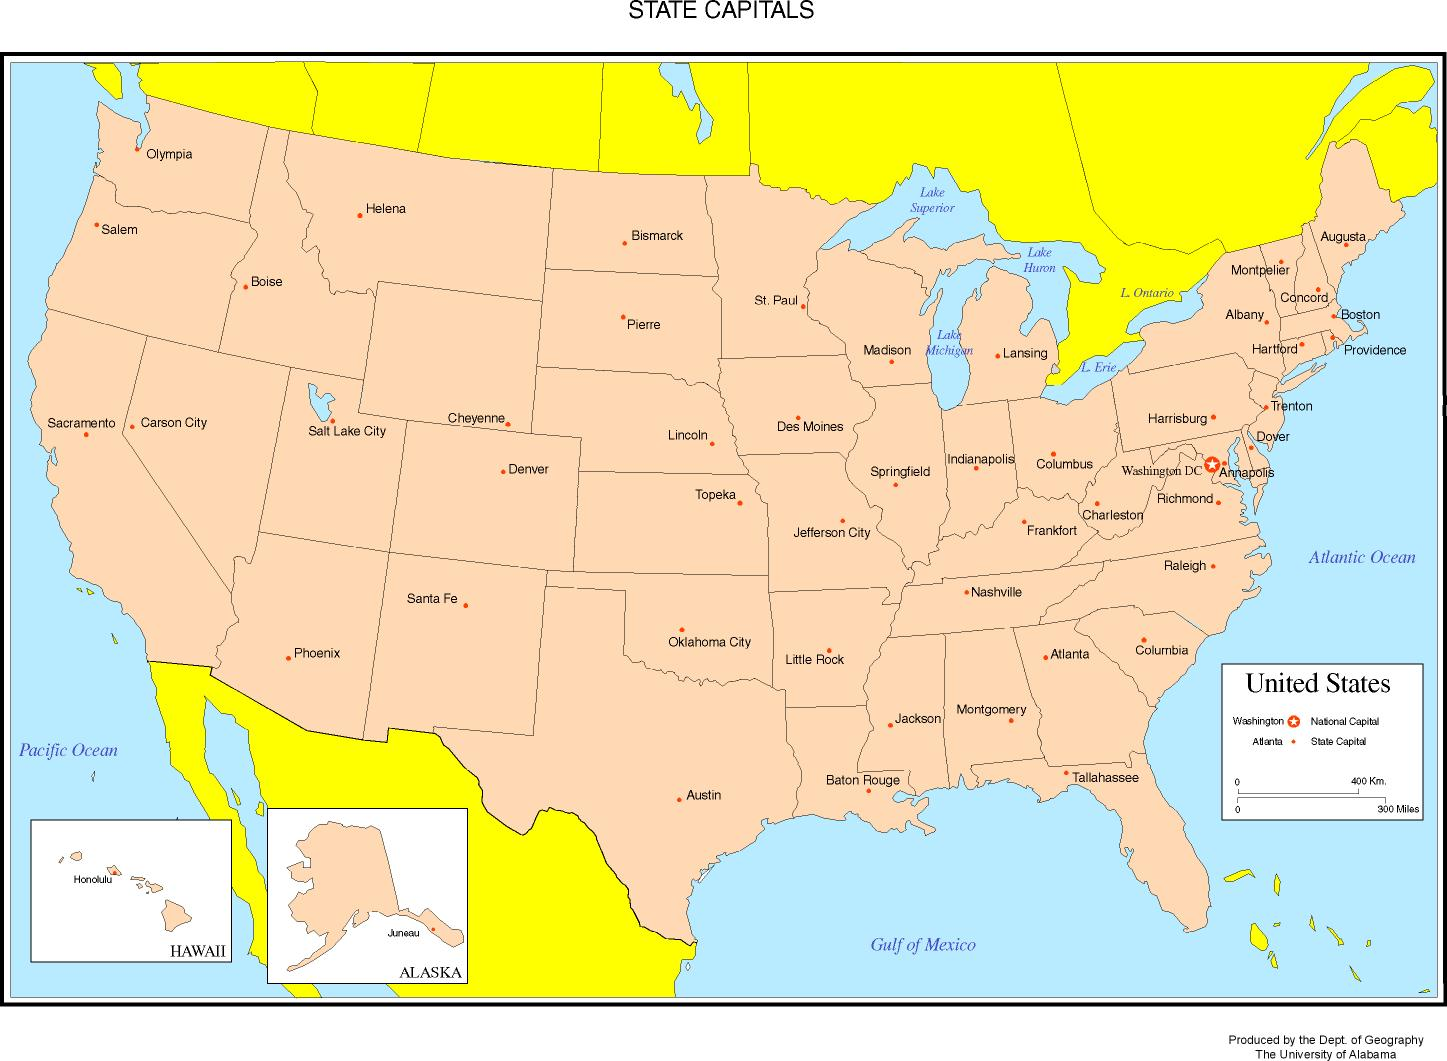 Maps Of The United States - Usa map of the states